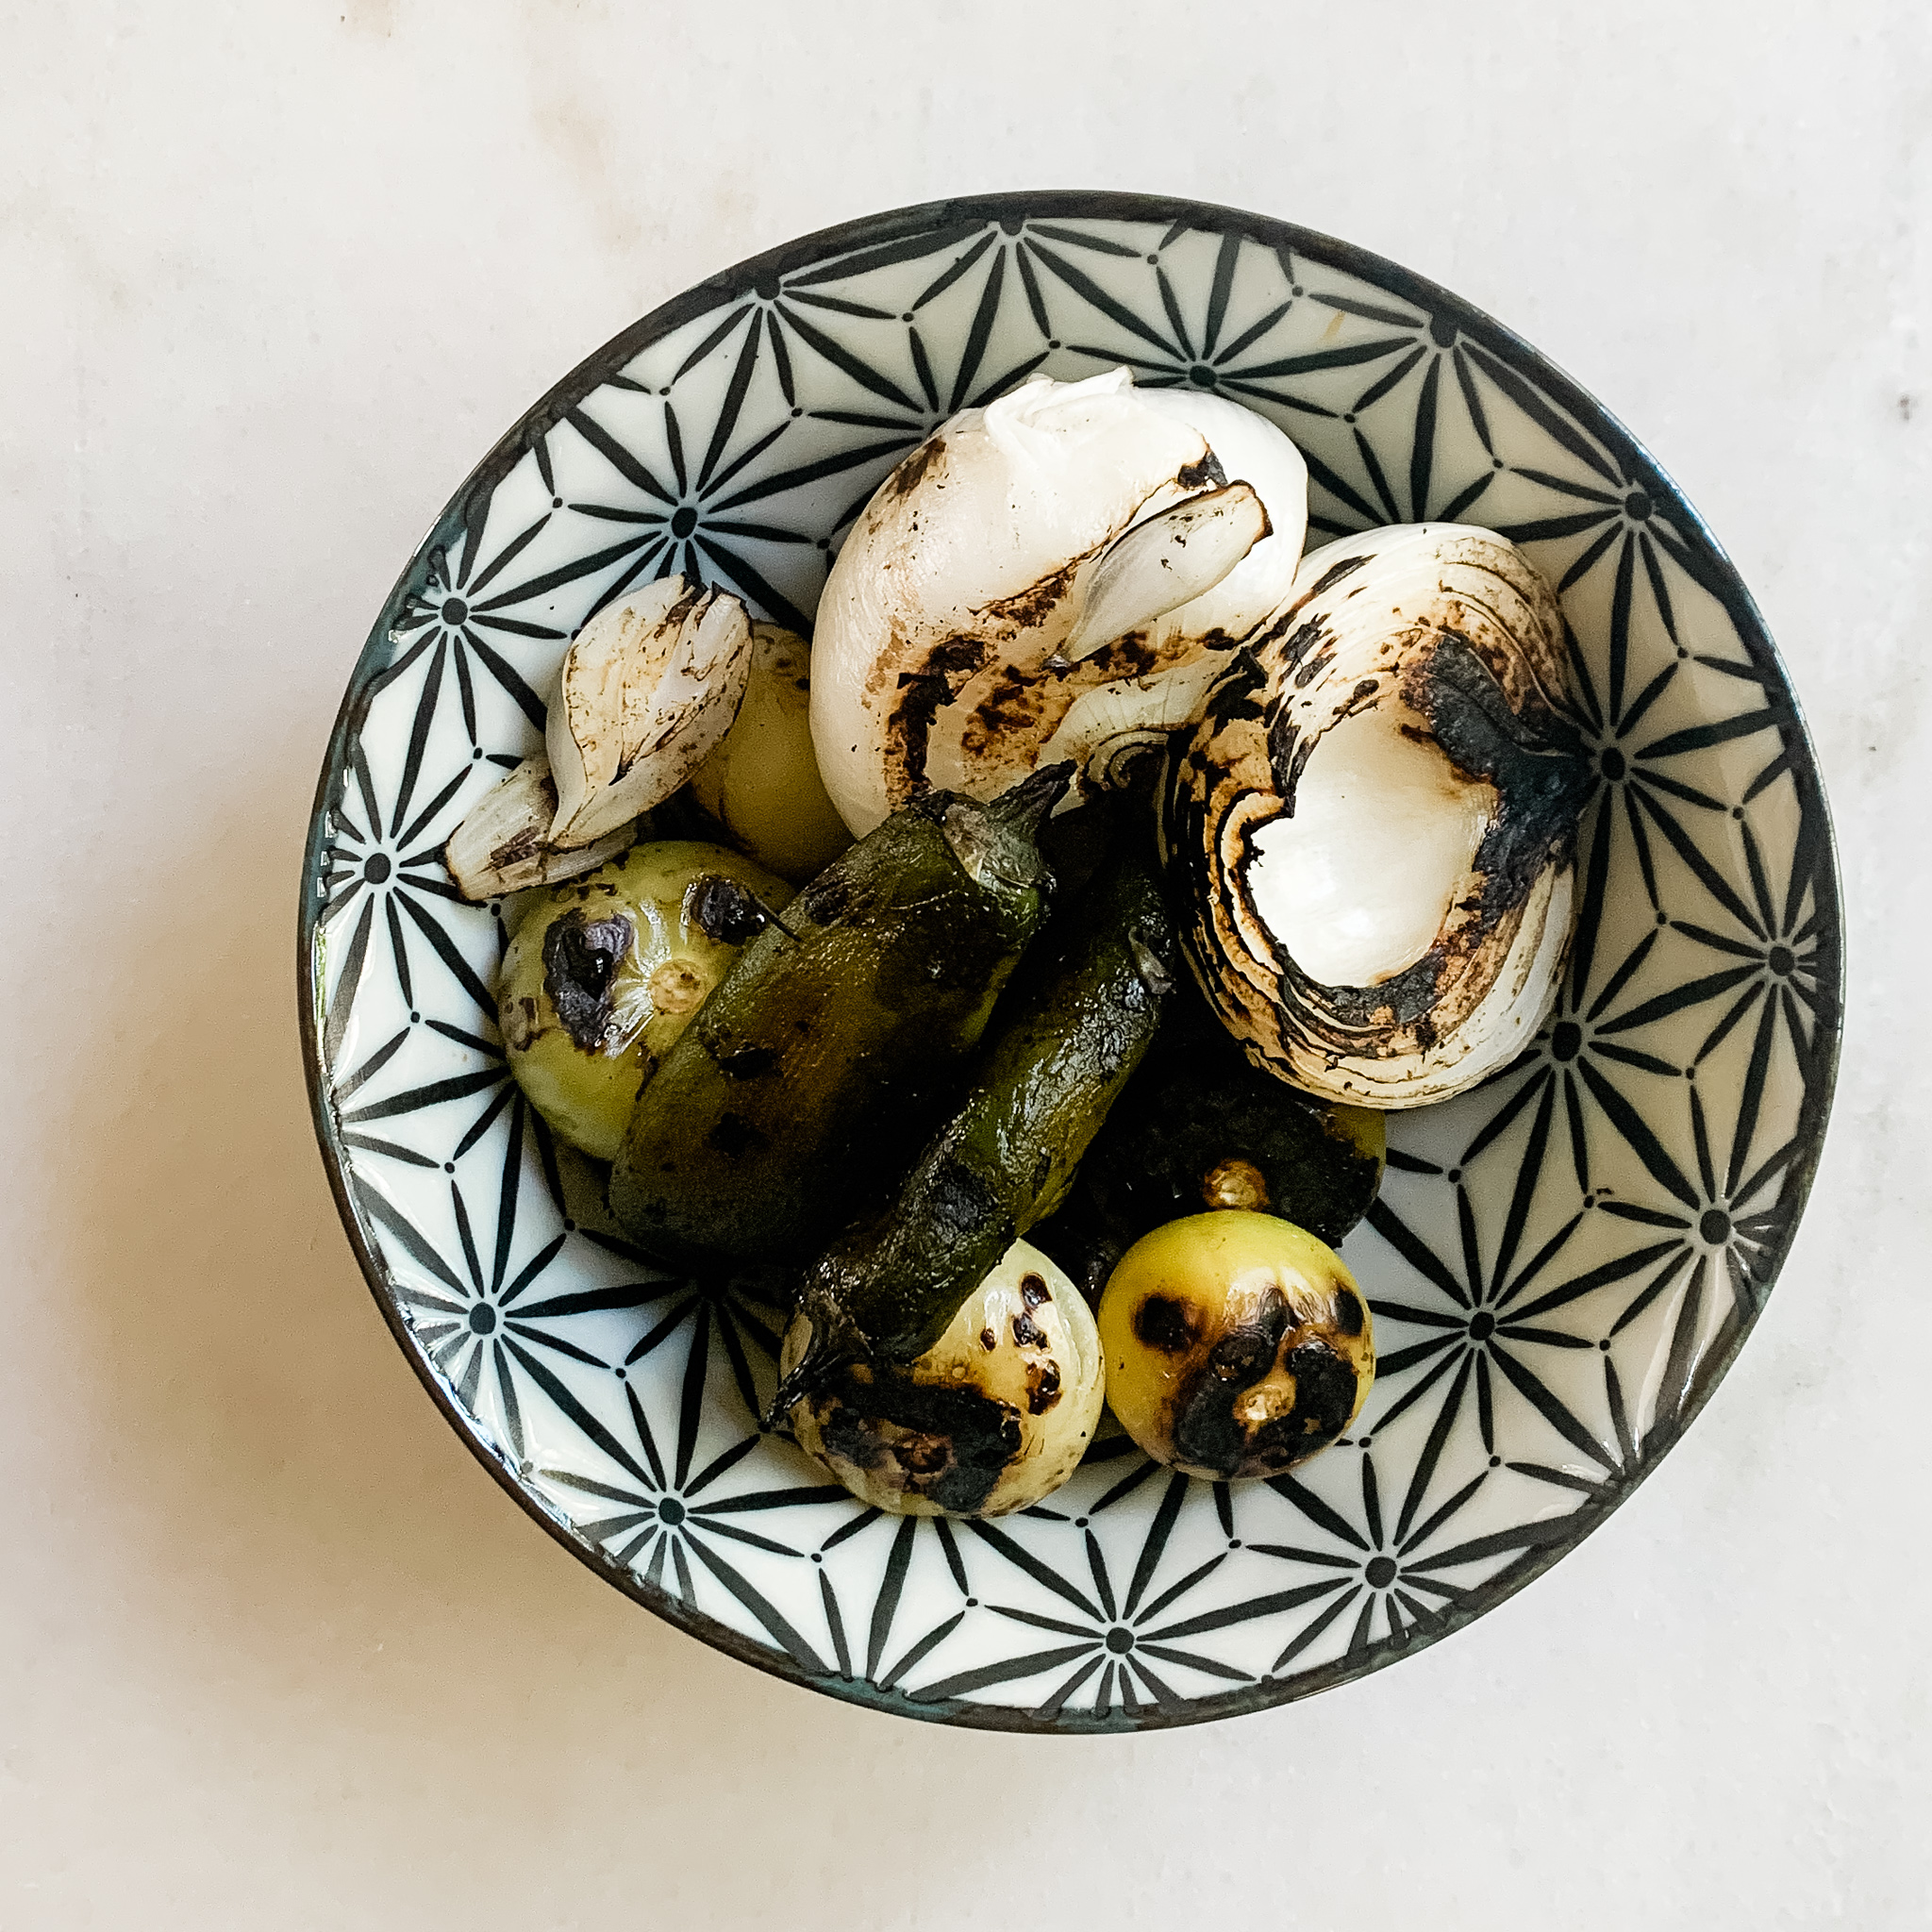 Charred Onion, Tomatillo + Peppers